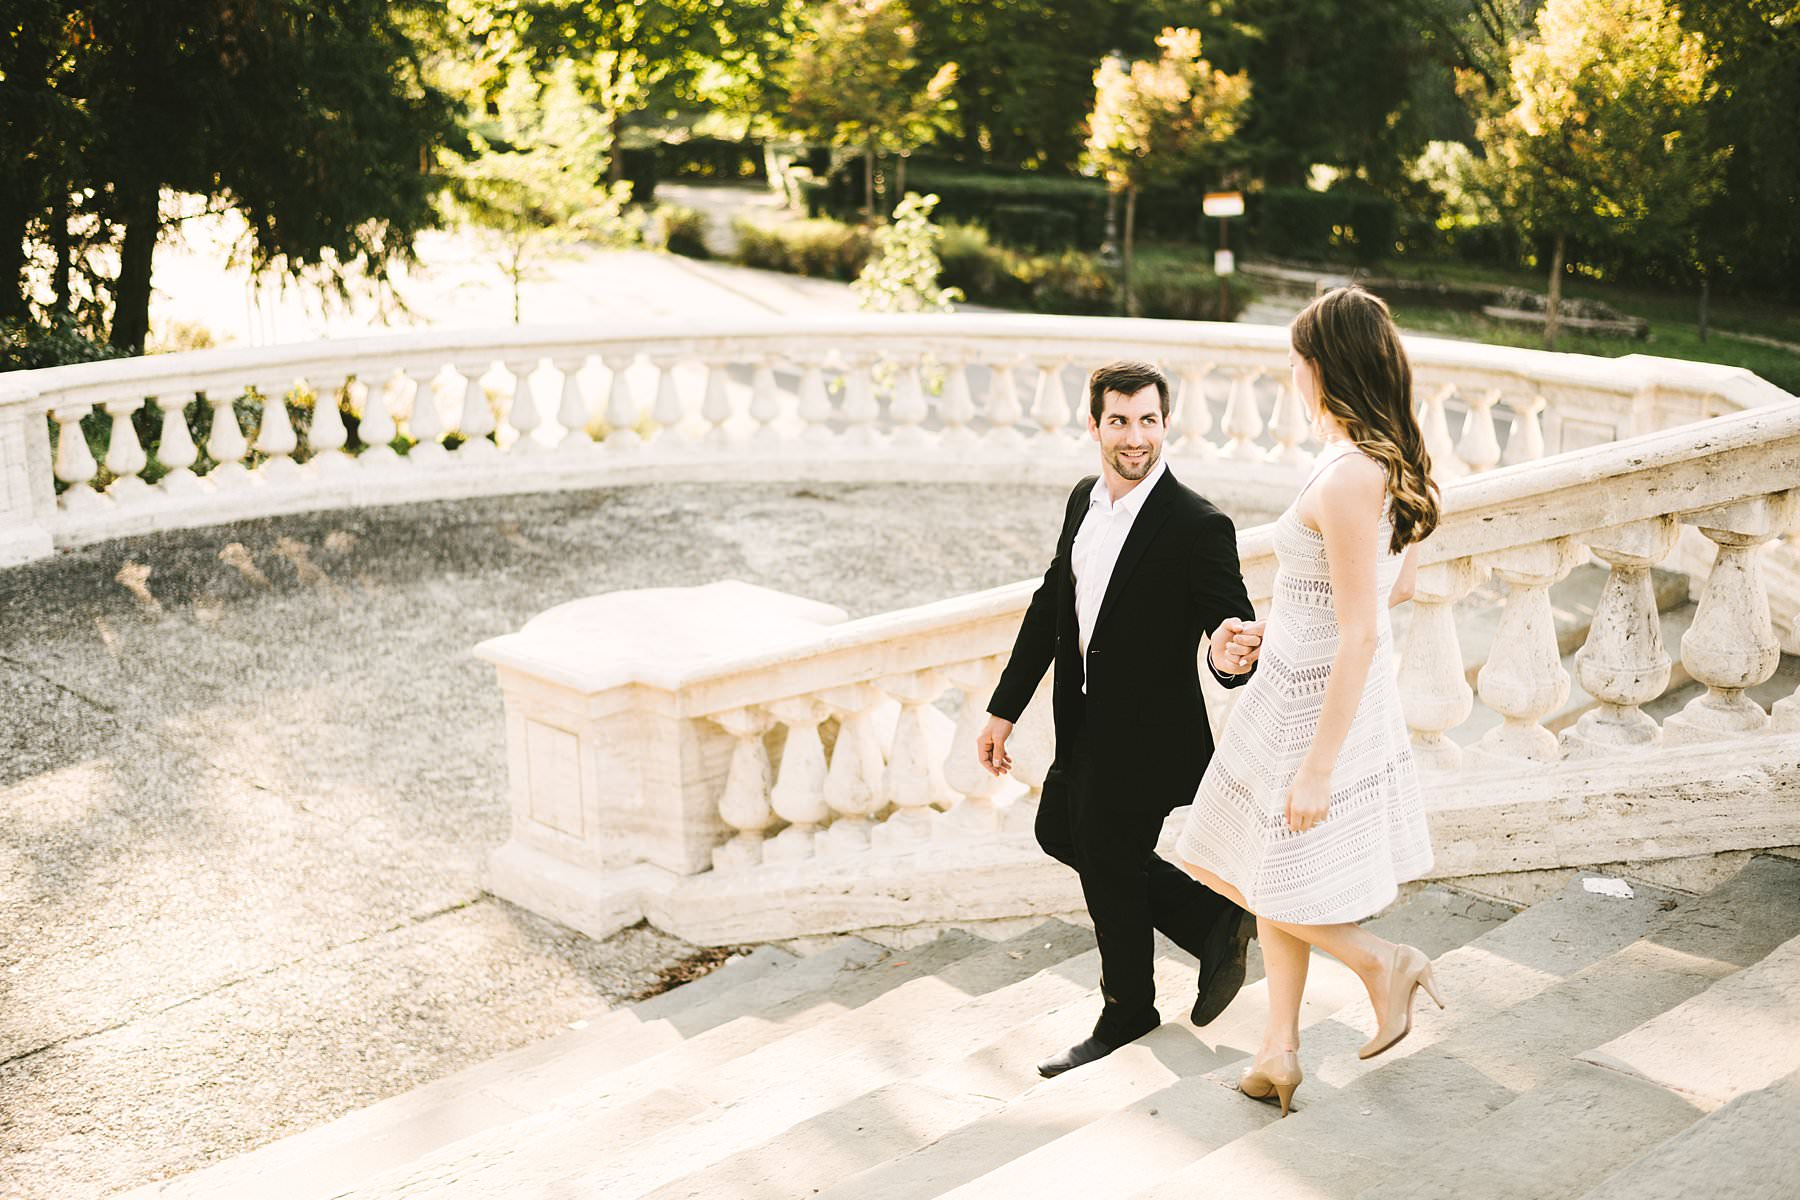 Engagement photos in Florence: so romantic! Kaitlyn and Marshall chose Florence for their engagement photos – and holiday! – and they came all the way from Missouri to personally experience the allure of the city. Couple walk down San Miniato staircase for a candid but lovely engagement photo during the golden hour